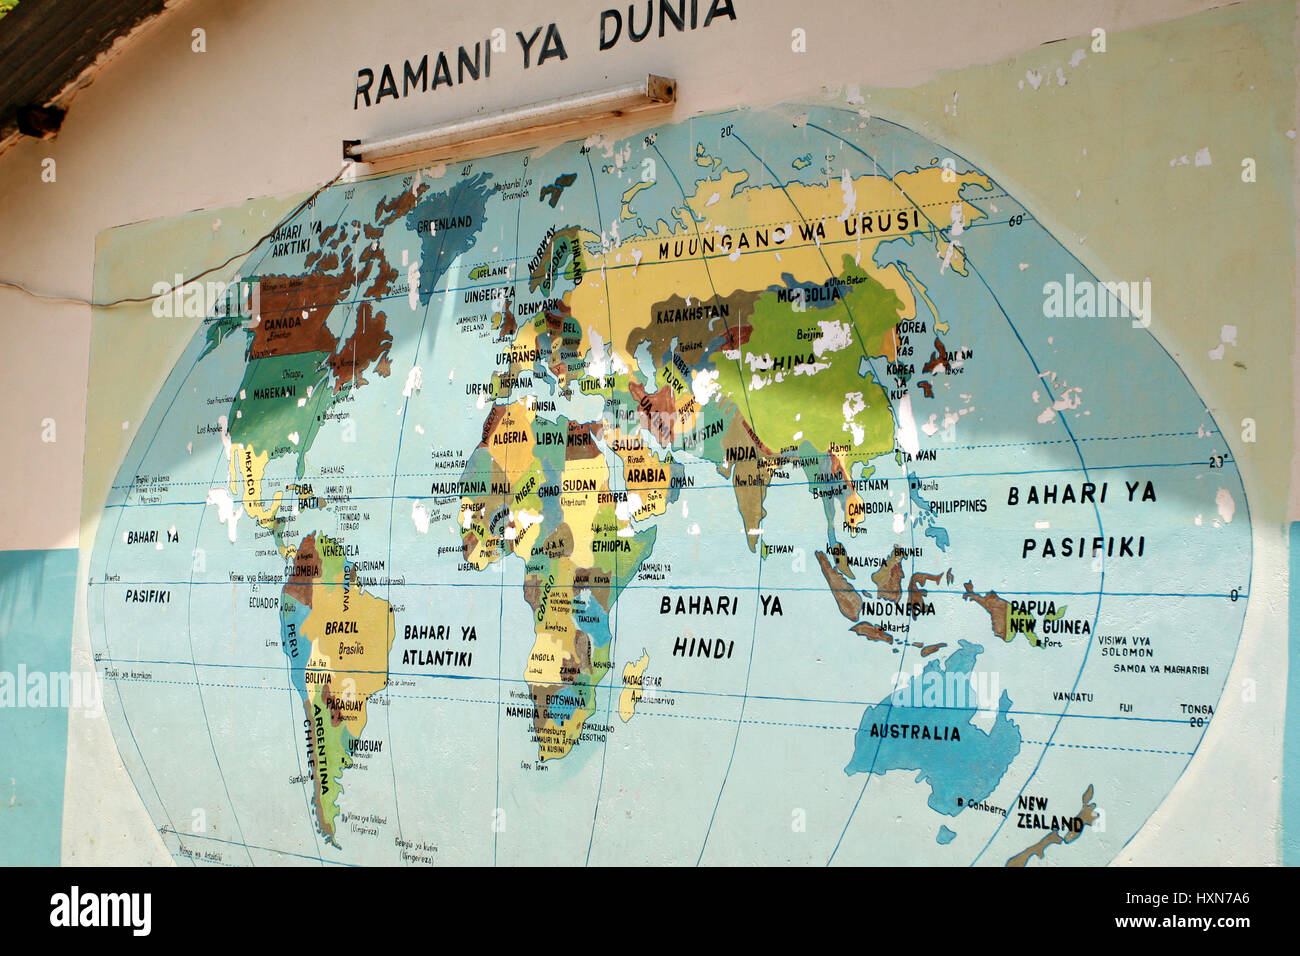 Dar es Salaam, Tanzania - February 21, 2008: World map that hangs on the wall at the entrance to the school yard, Stock Photo